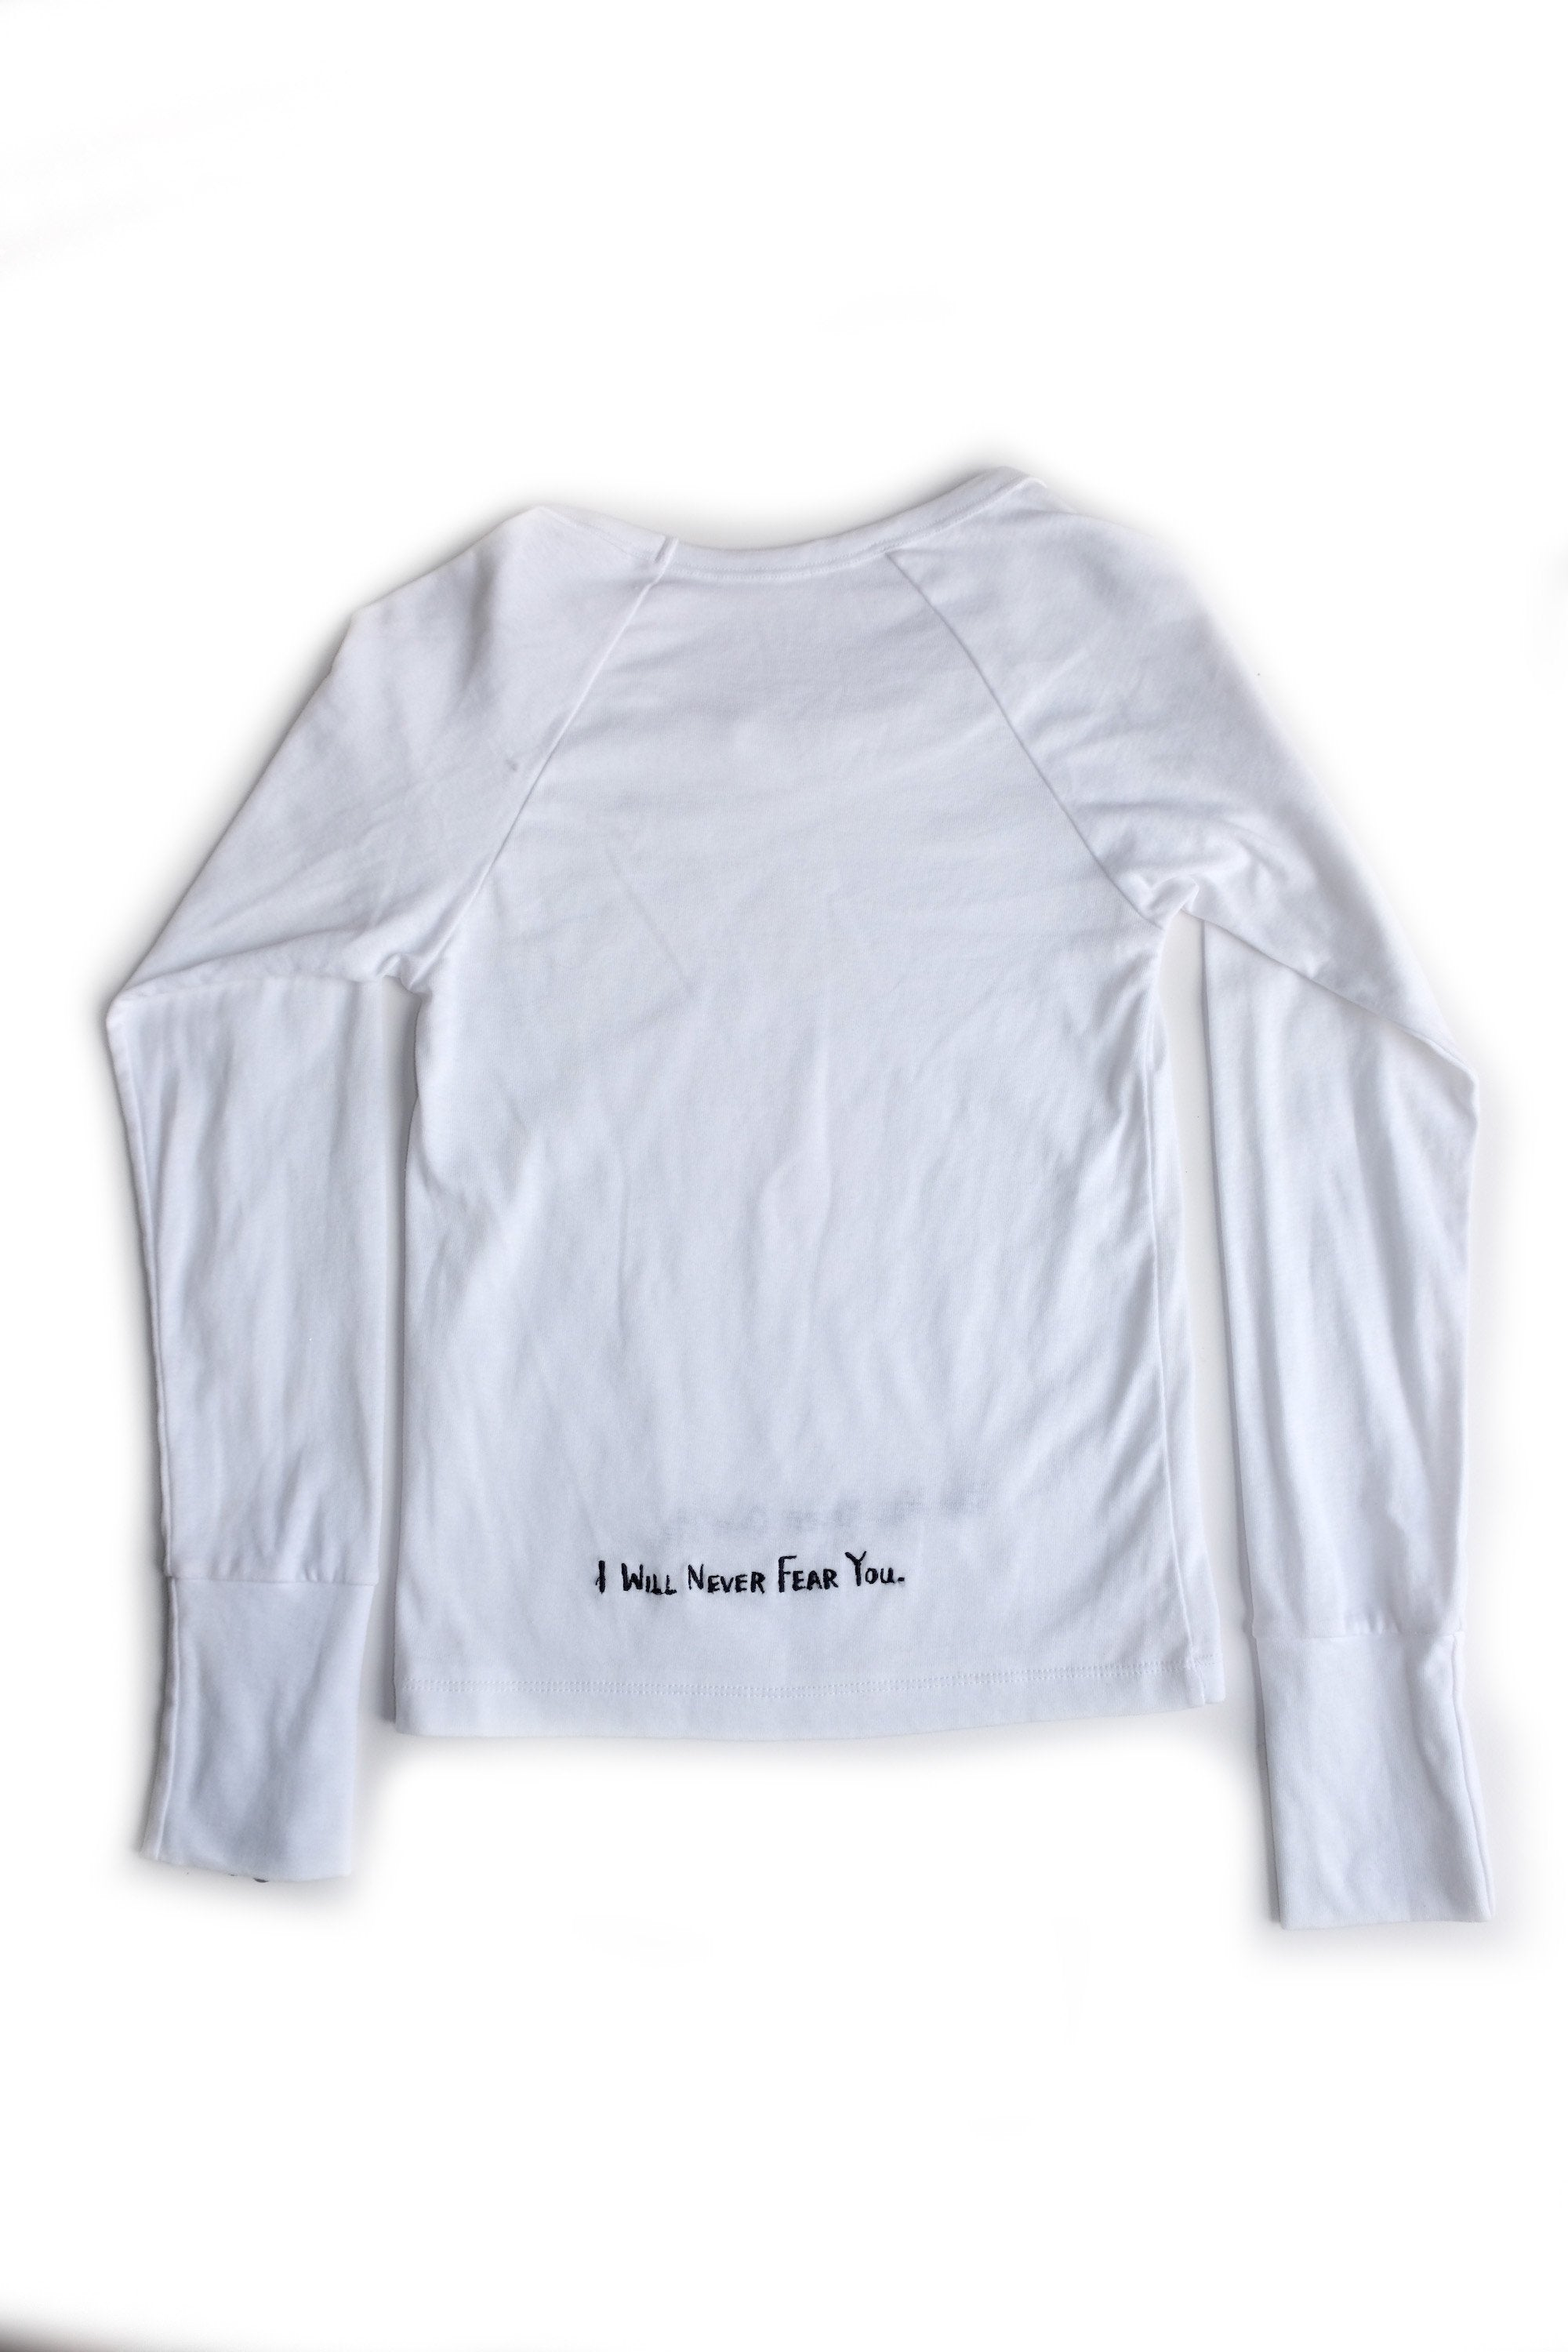 You Will Never Own Me Long Sleeve